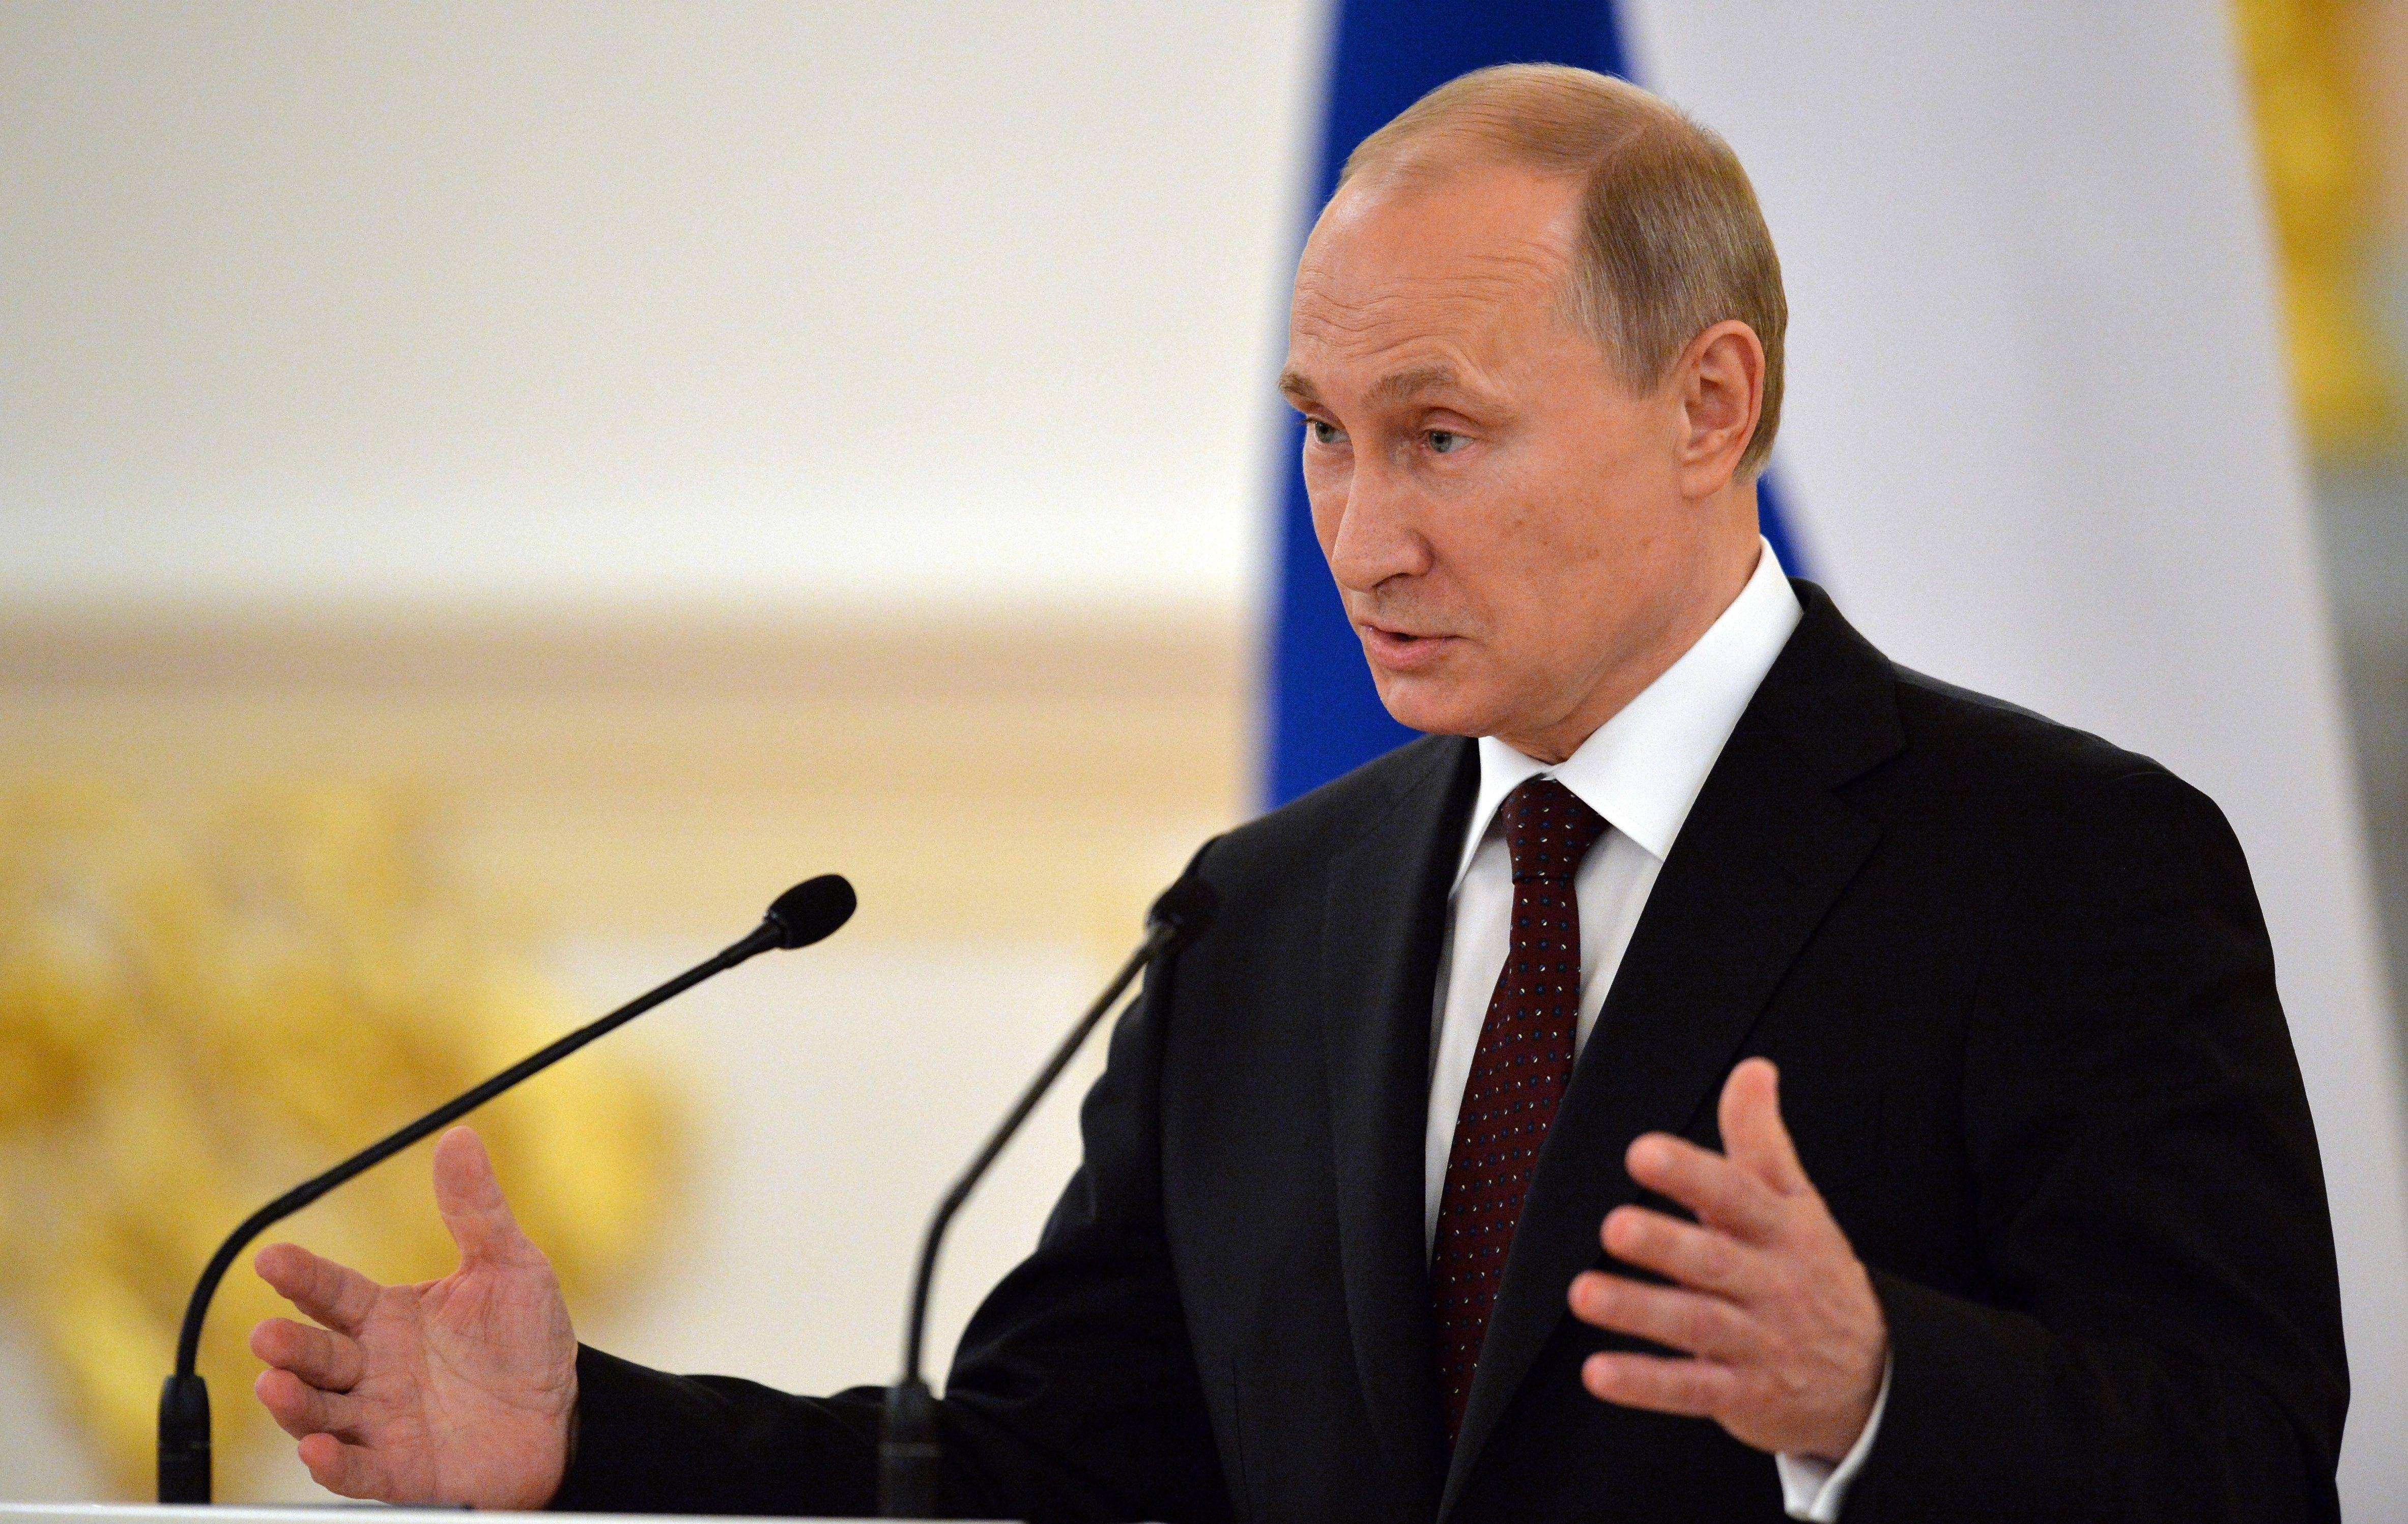 Vladimir Putin's territorial ambitions are bumping up against financial markets.